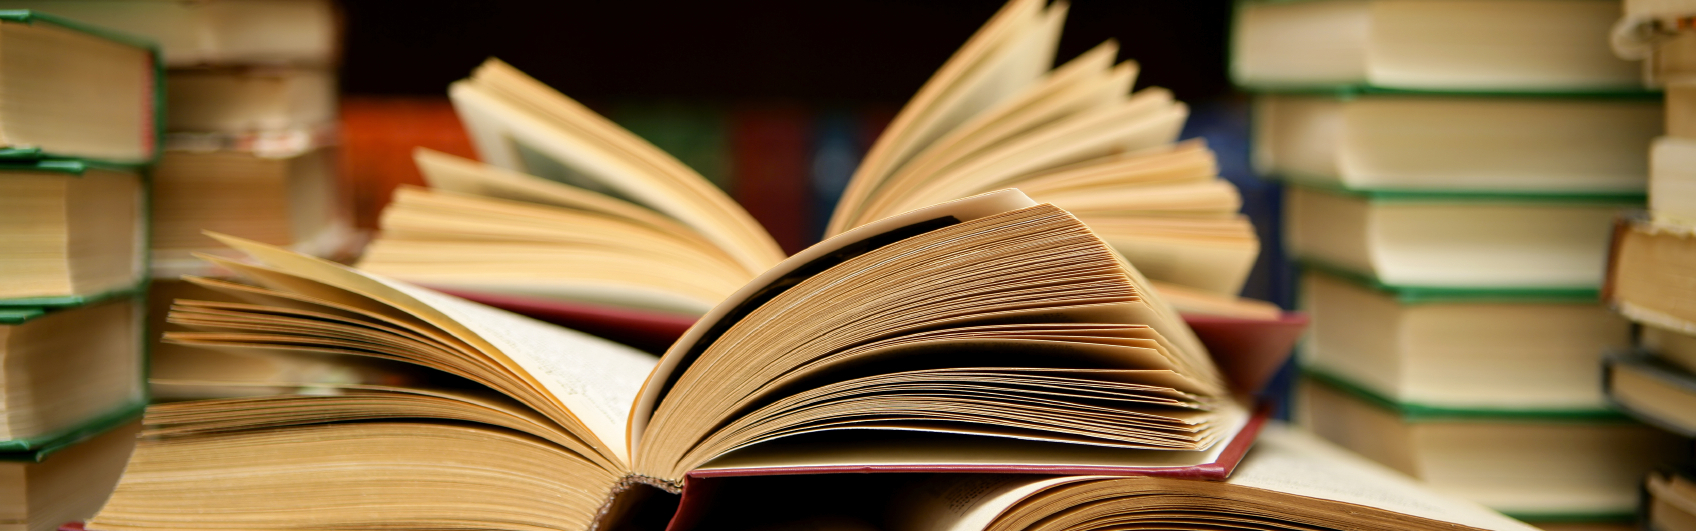 Helpful Books for Deepening Discipleship